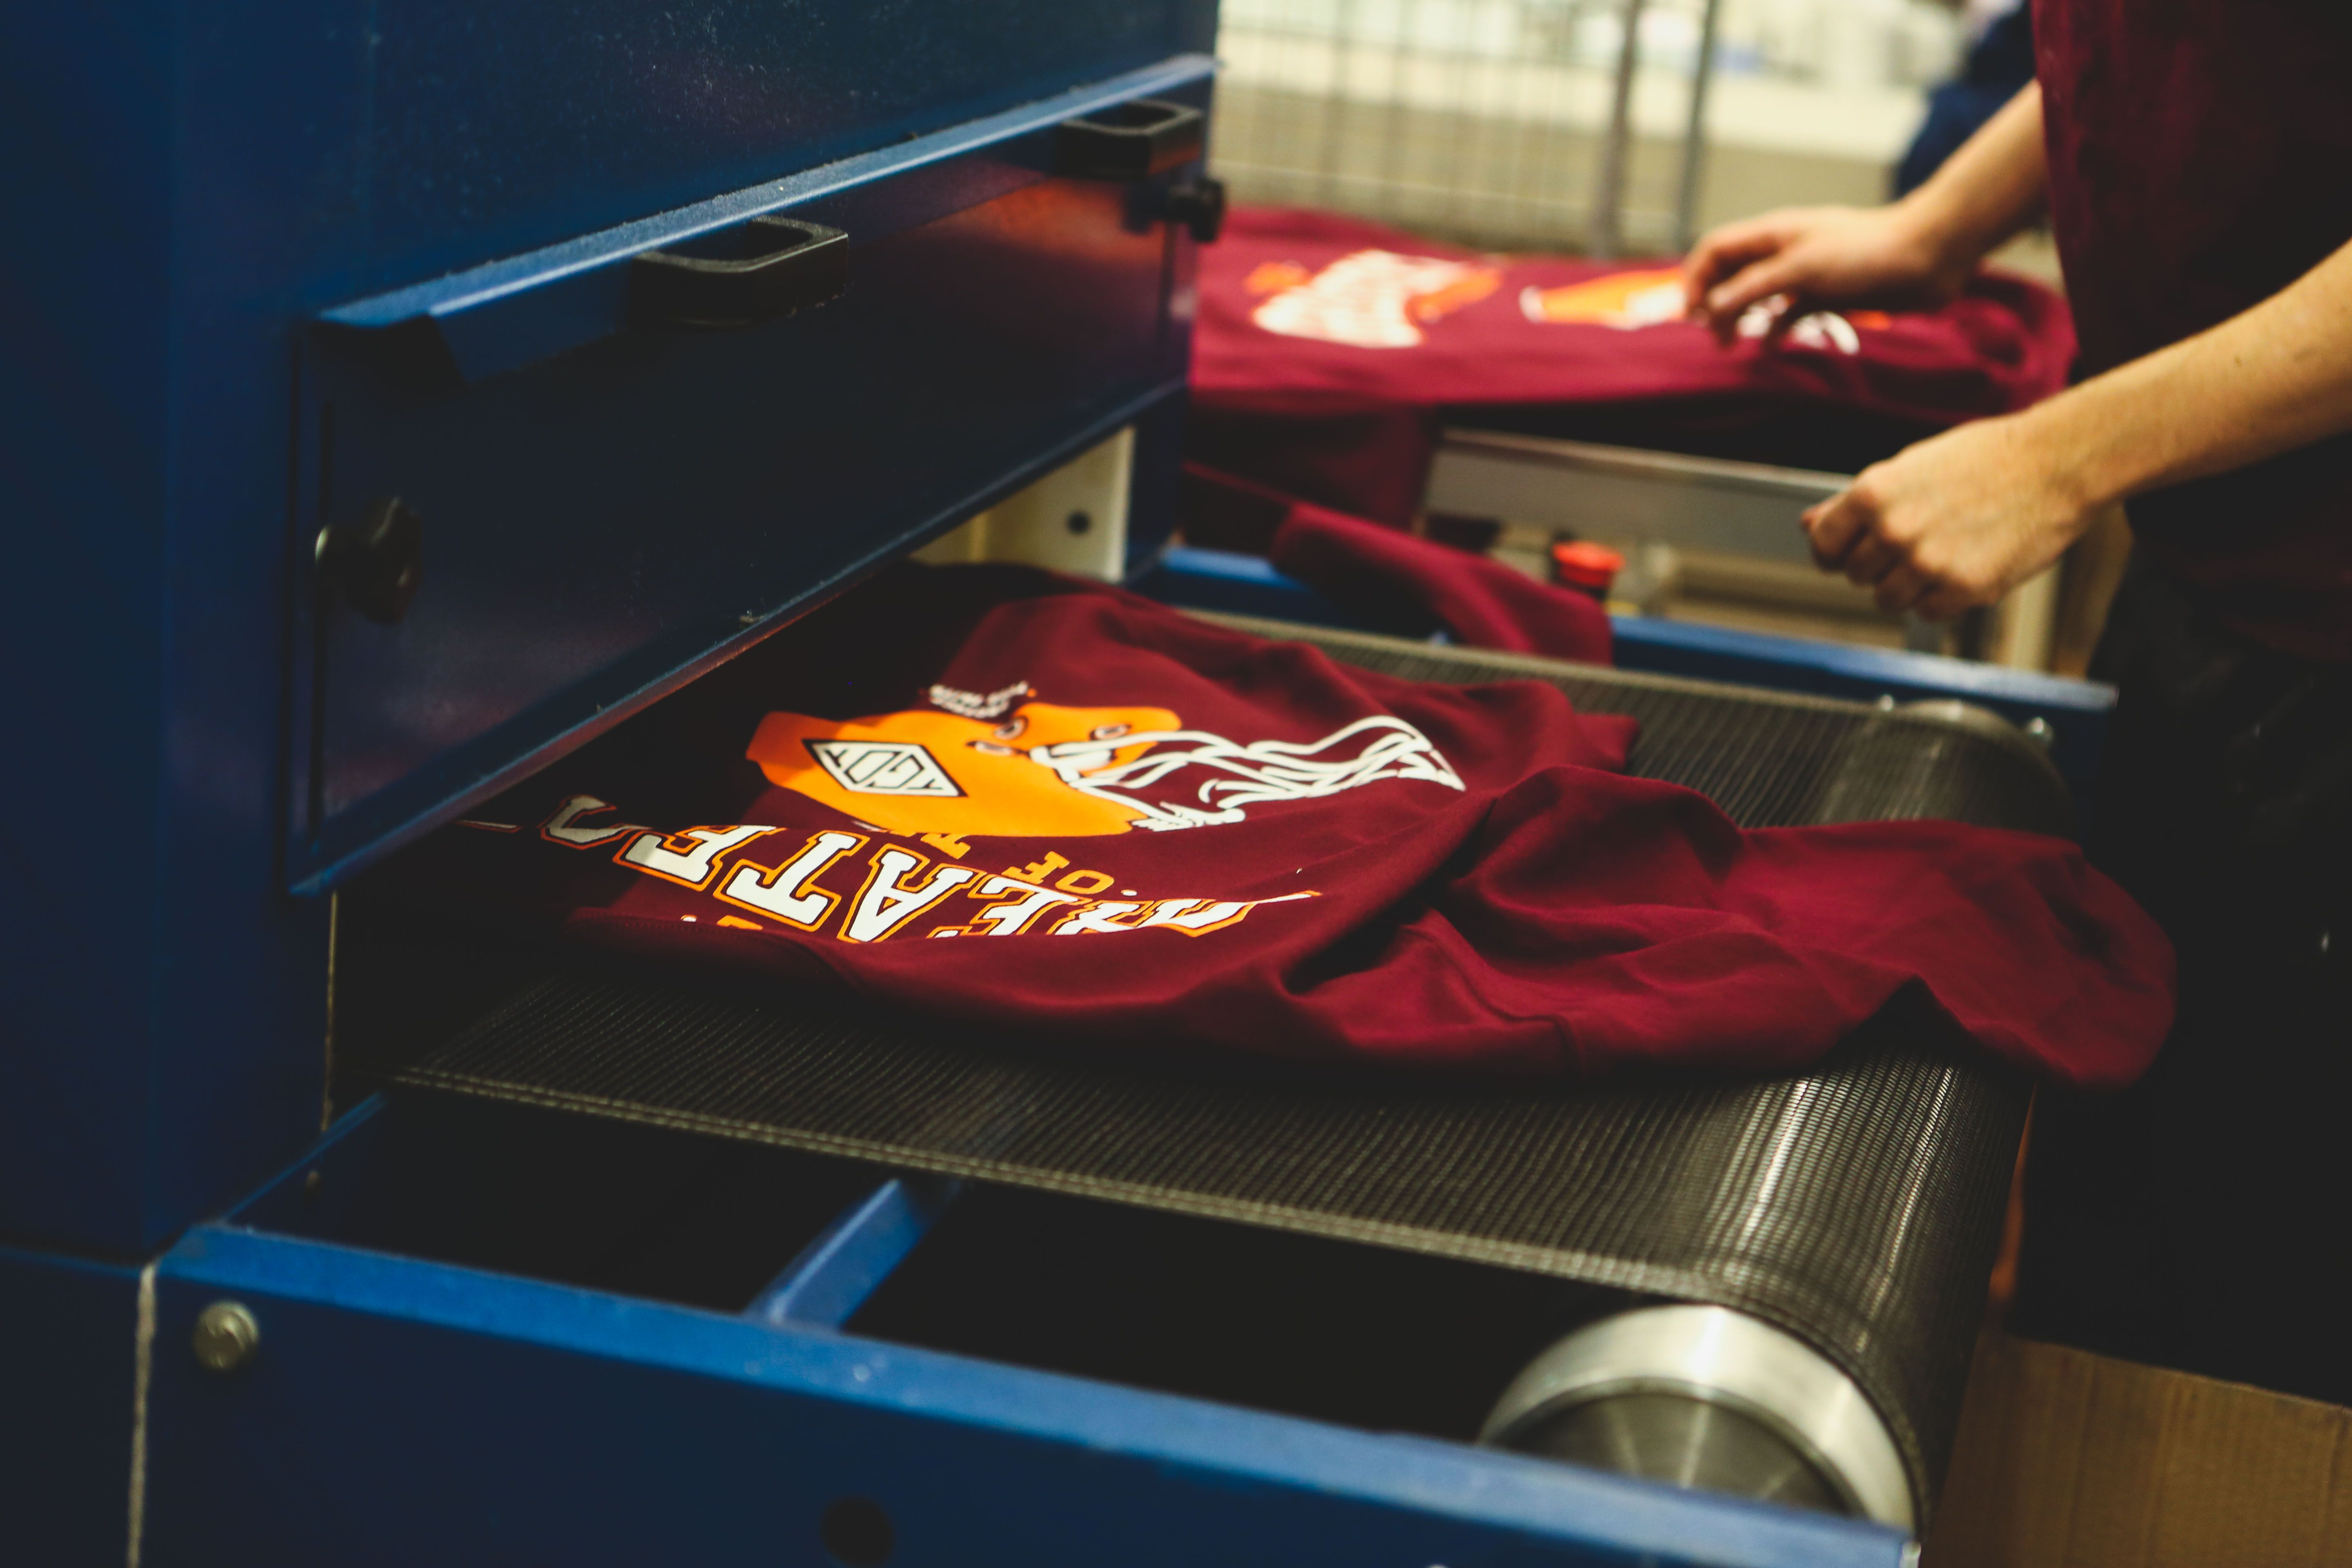 Freshly baked sweaters coming out of the oven...